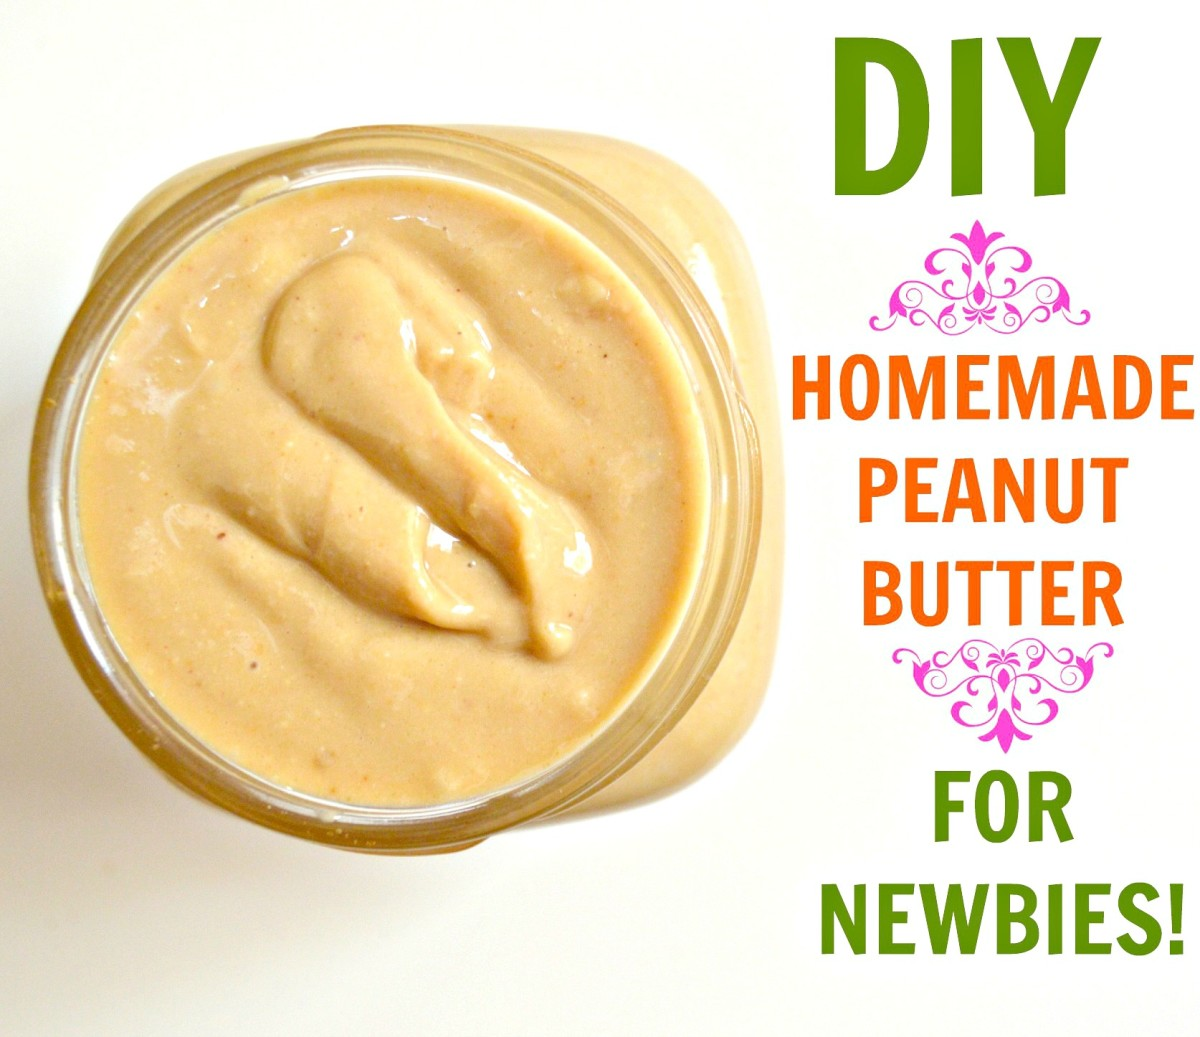 Easy DIY: How to Make Peanut Butter at Home